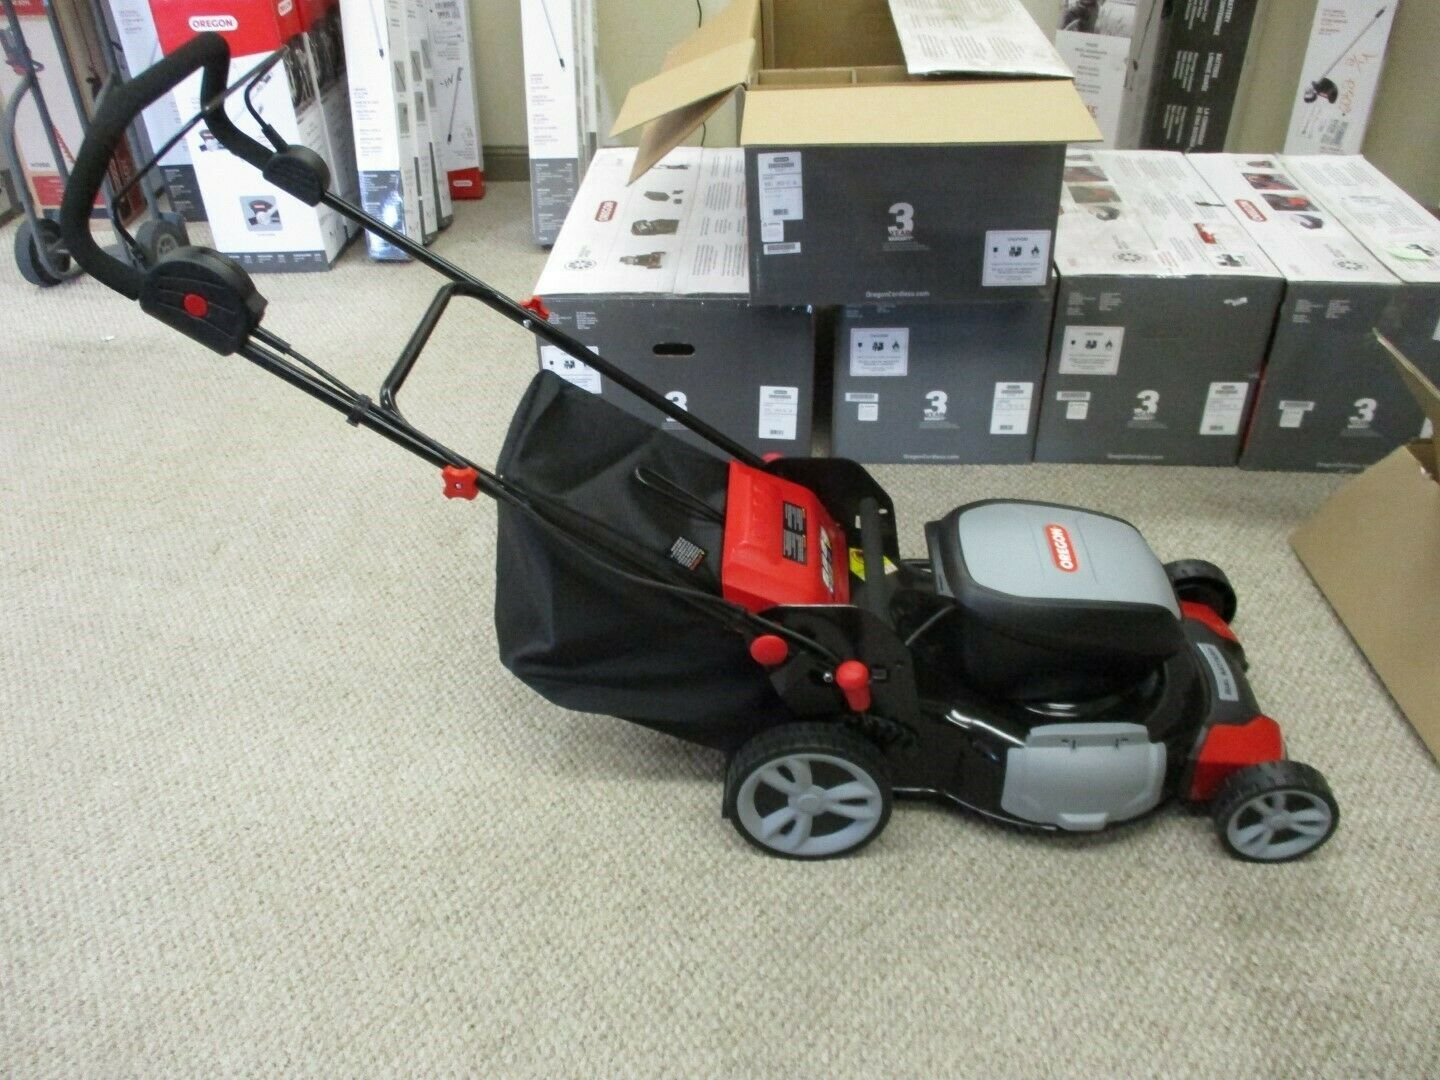 Oregon 591077 LM400 Lawn Mower with two 4.0 Ah Batteries and